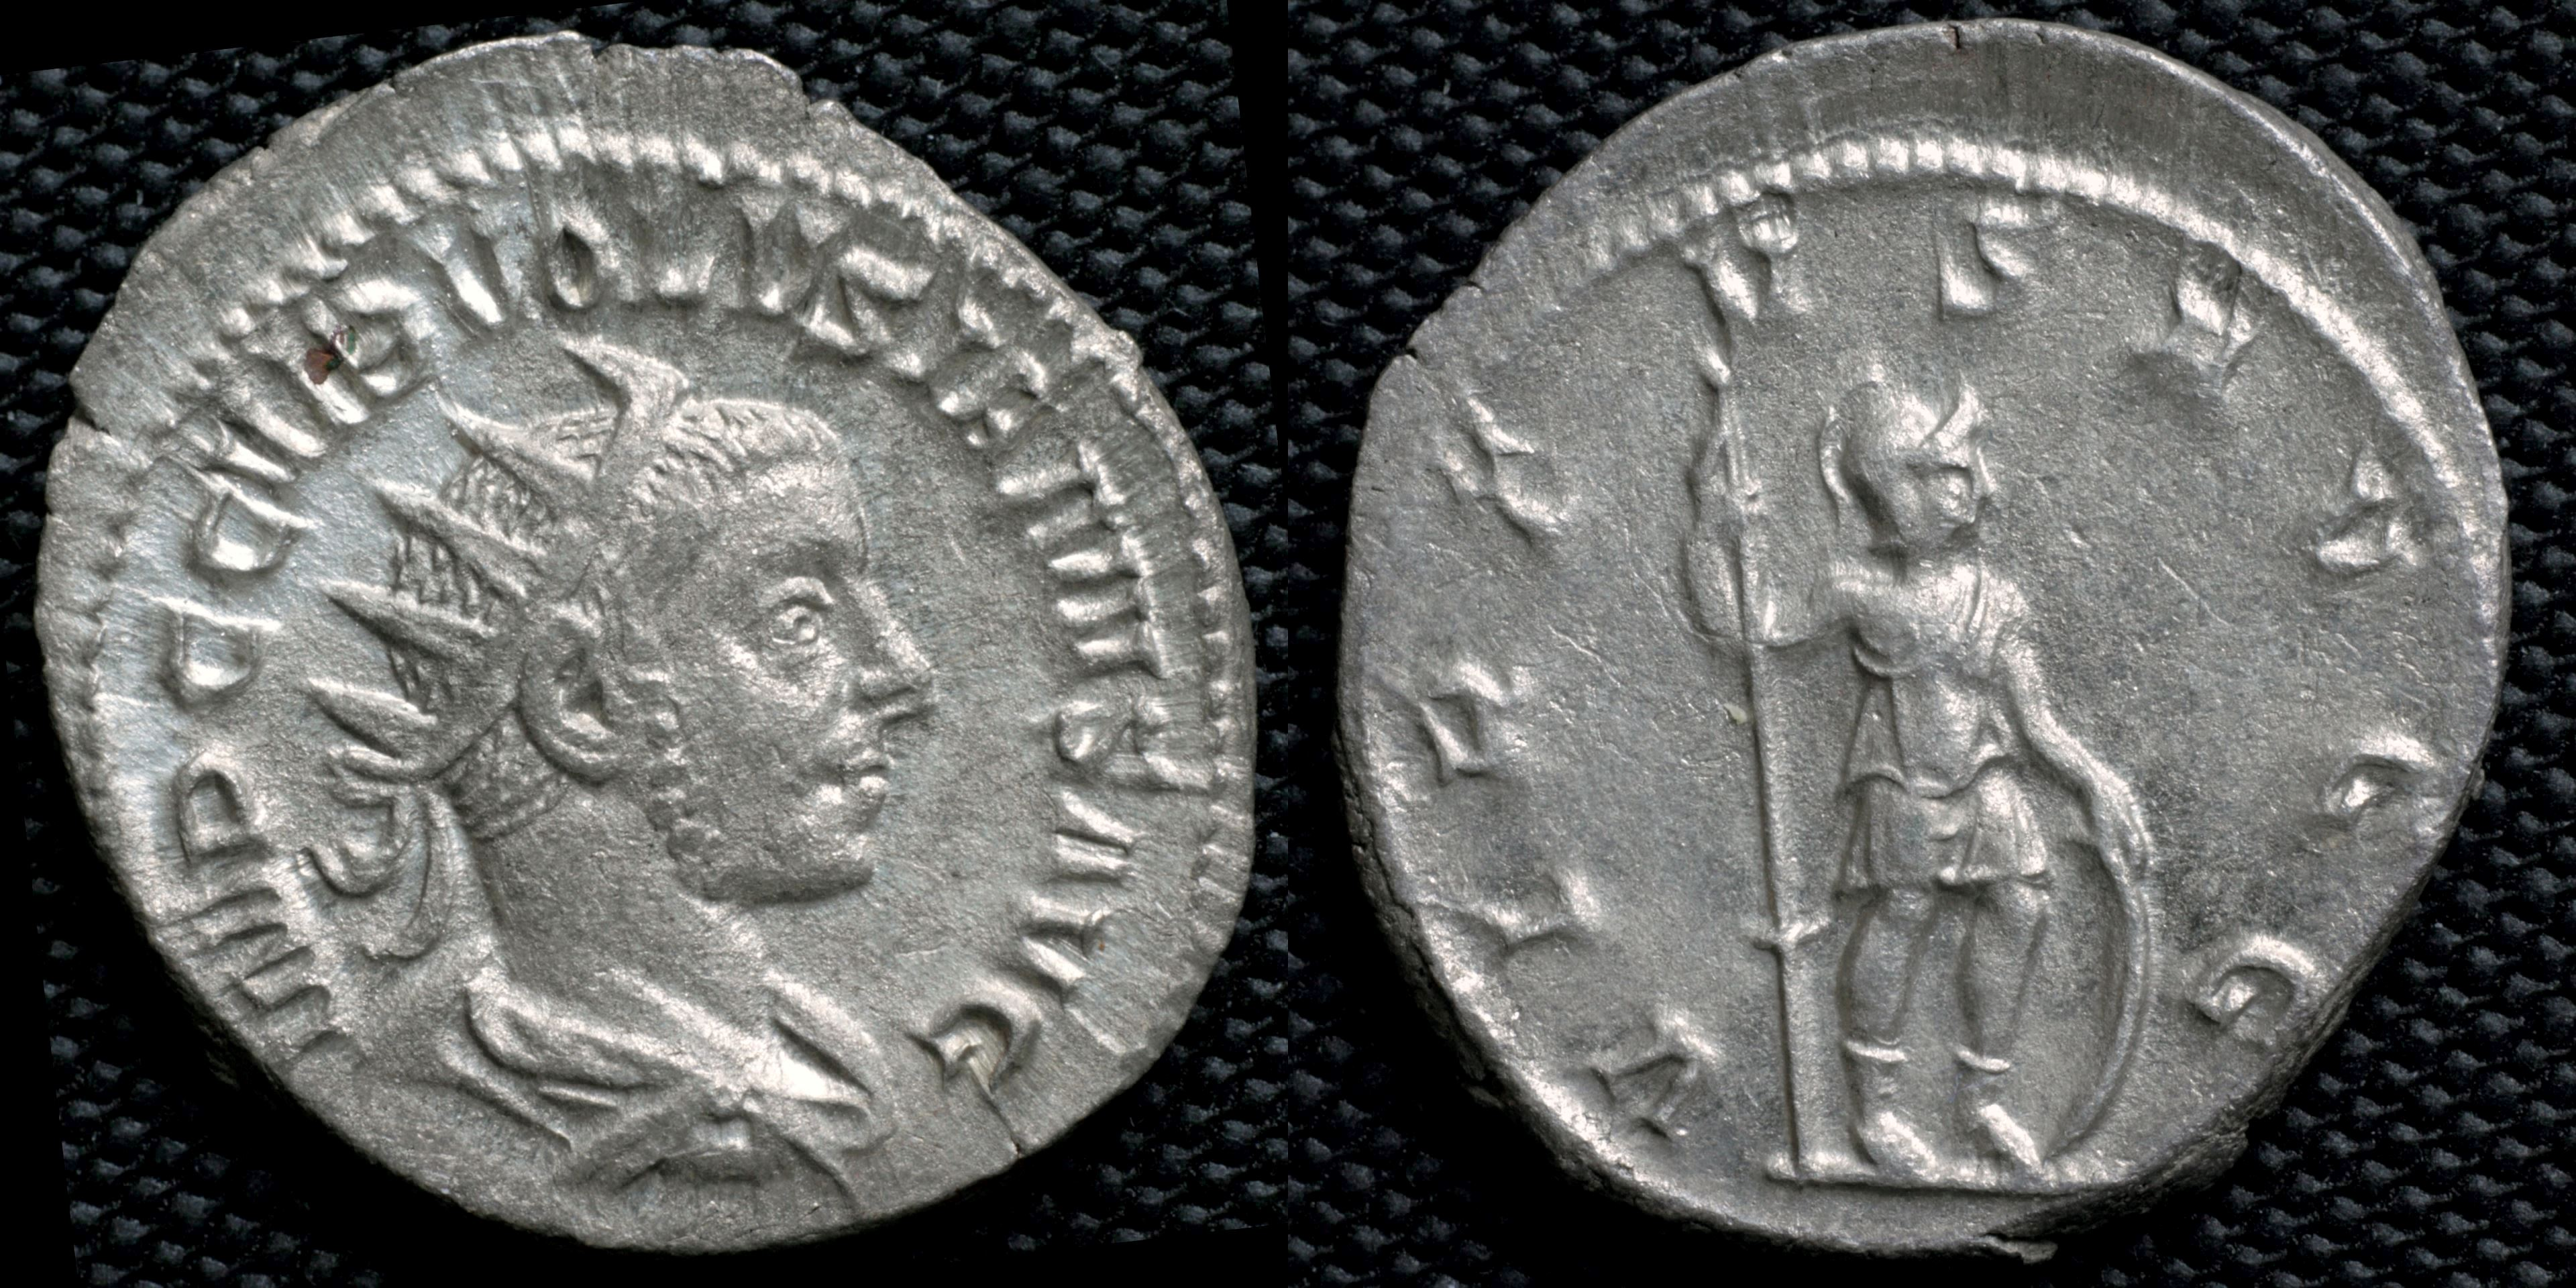 /Files/Images/Coinsite/CoinDB/132_Volusianus_Virtus.jpg